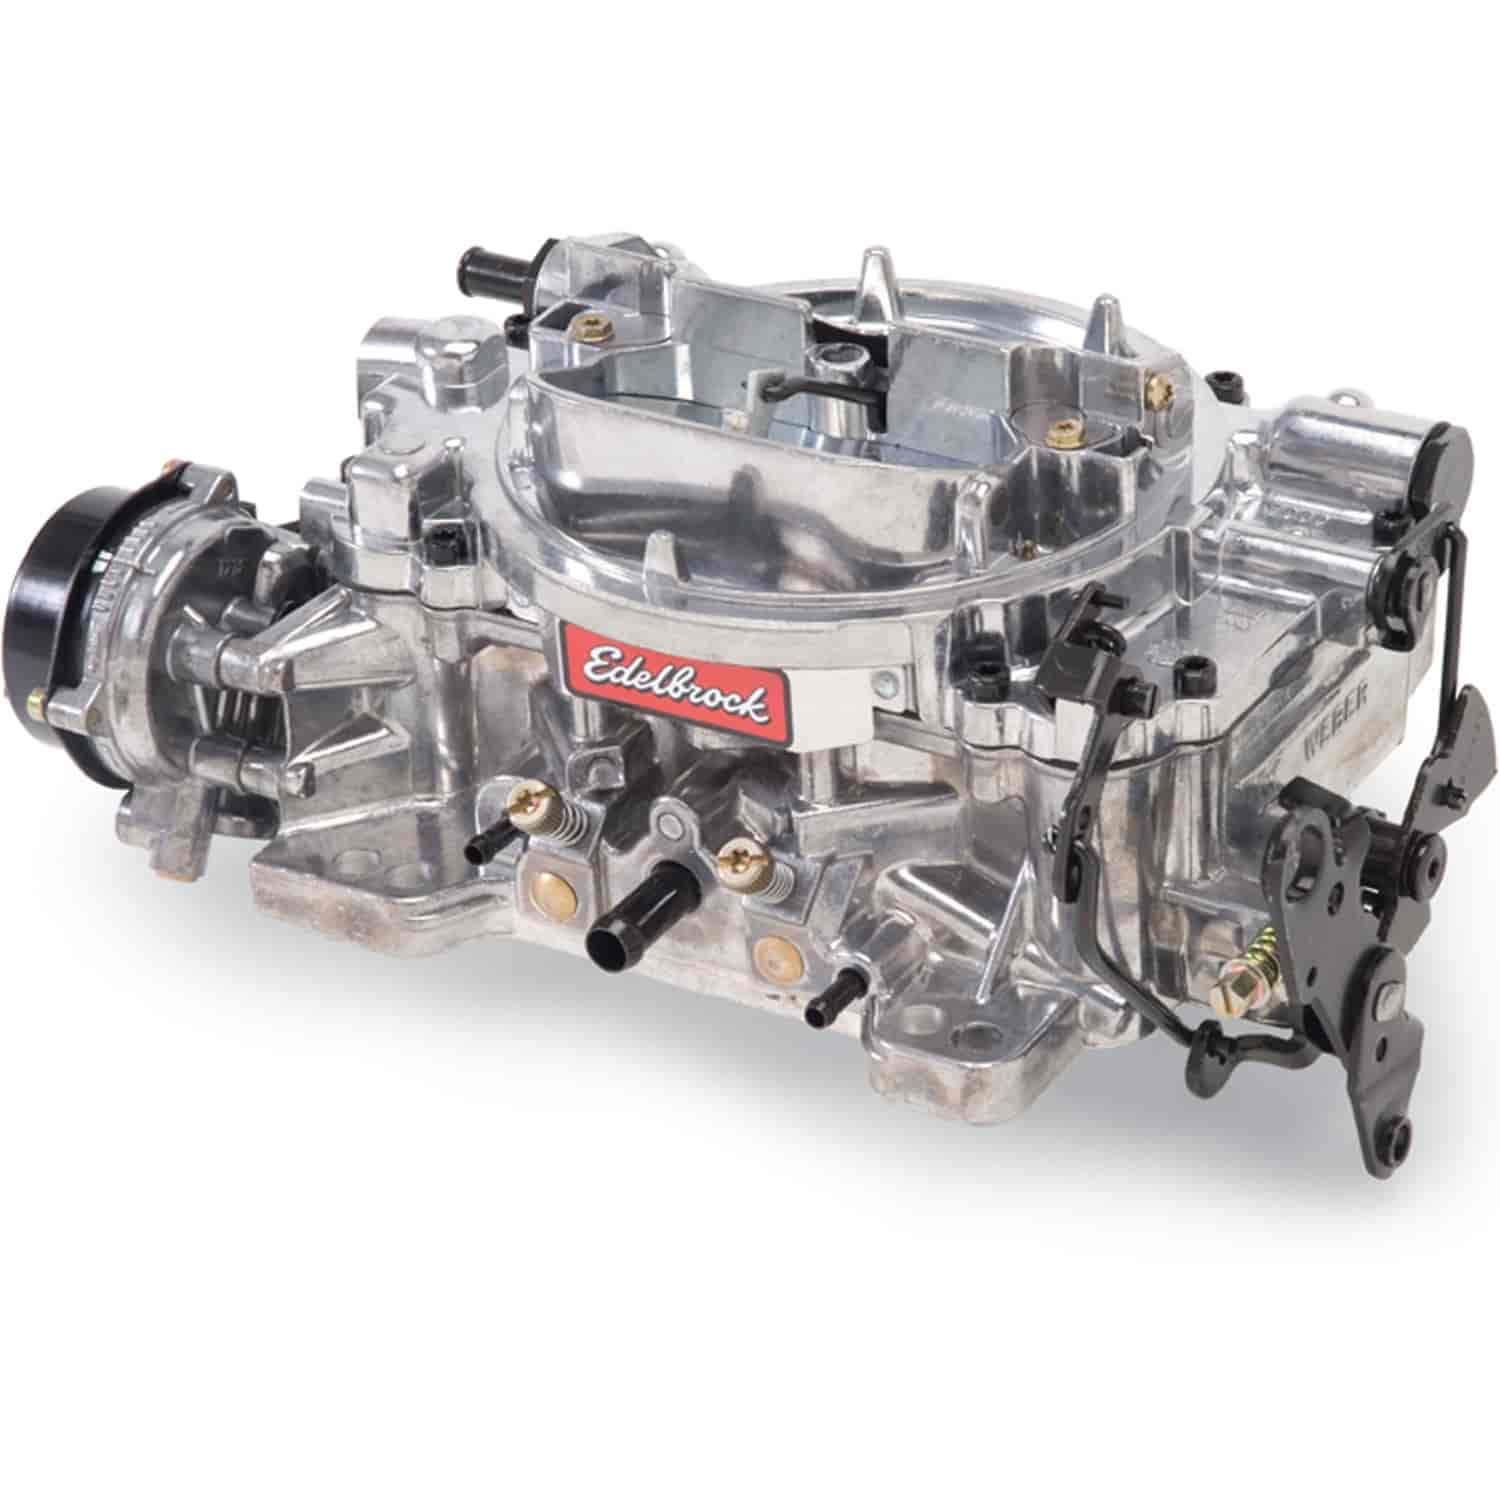 Edelbrock 1801 - Edelbrock Thunder Series AVS Carburetors